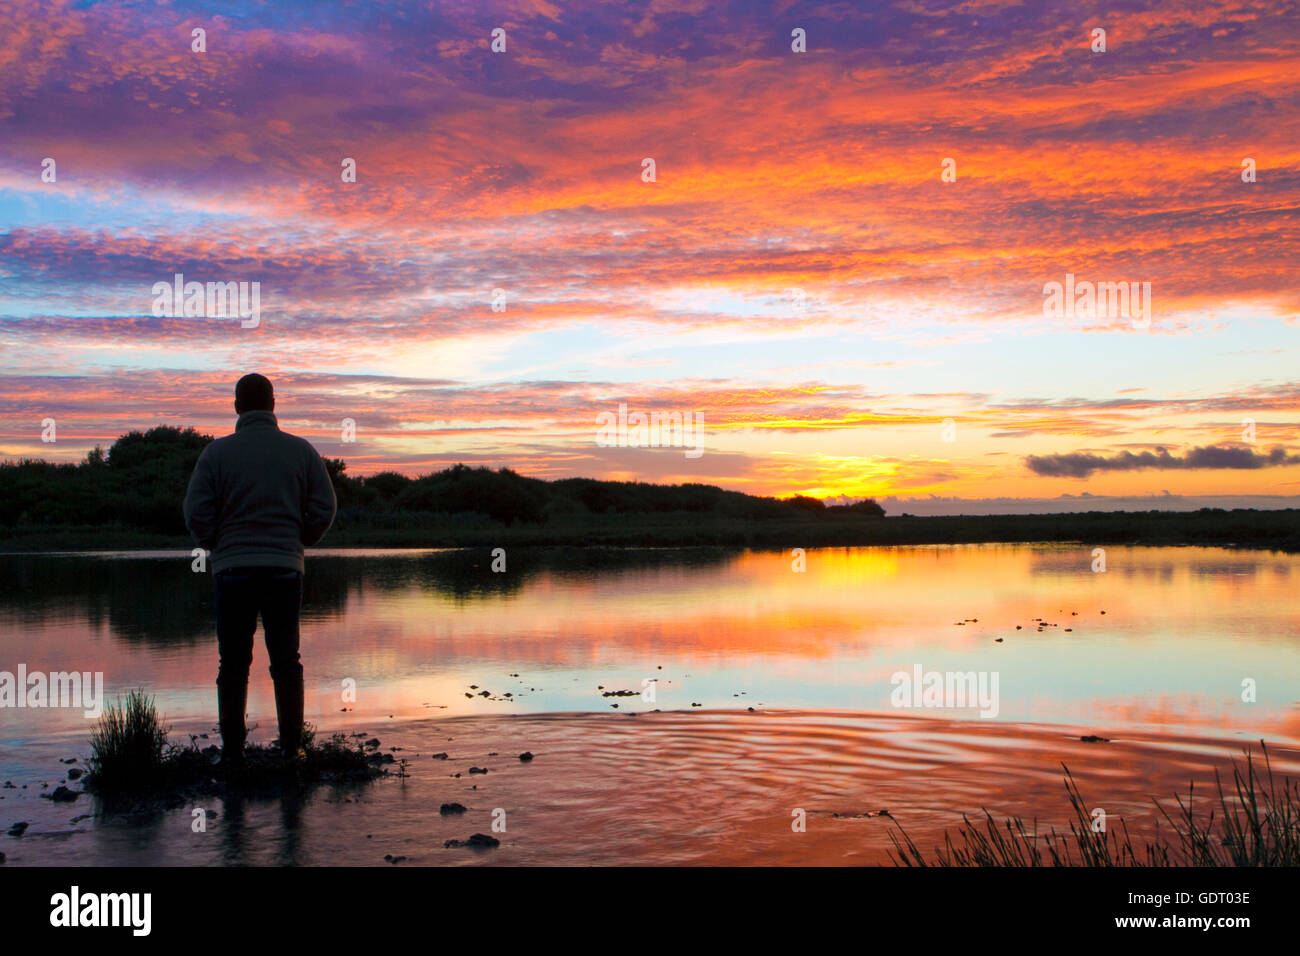 UK Weather:  Sunrise, Southport, Merseyside, UK. 21-Jul-16.  A man watches the rising sun over the wetlands of Southport's - Stock Image